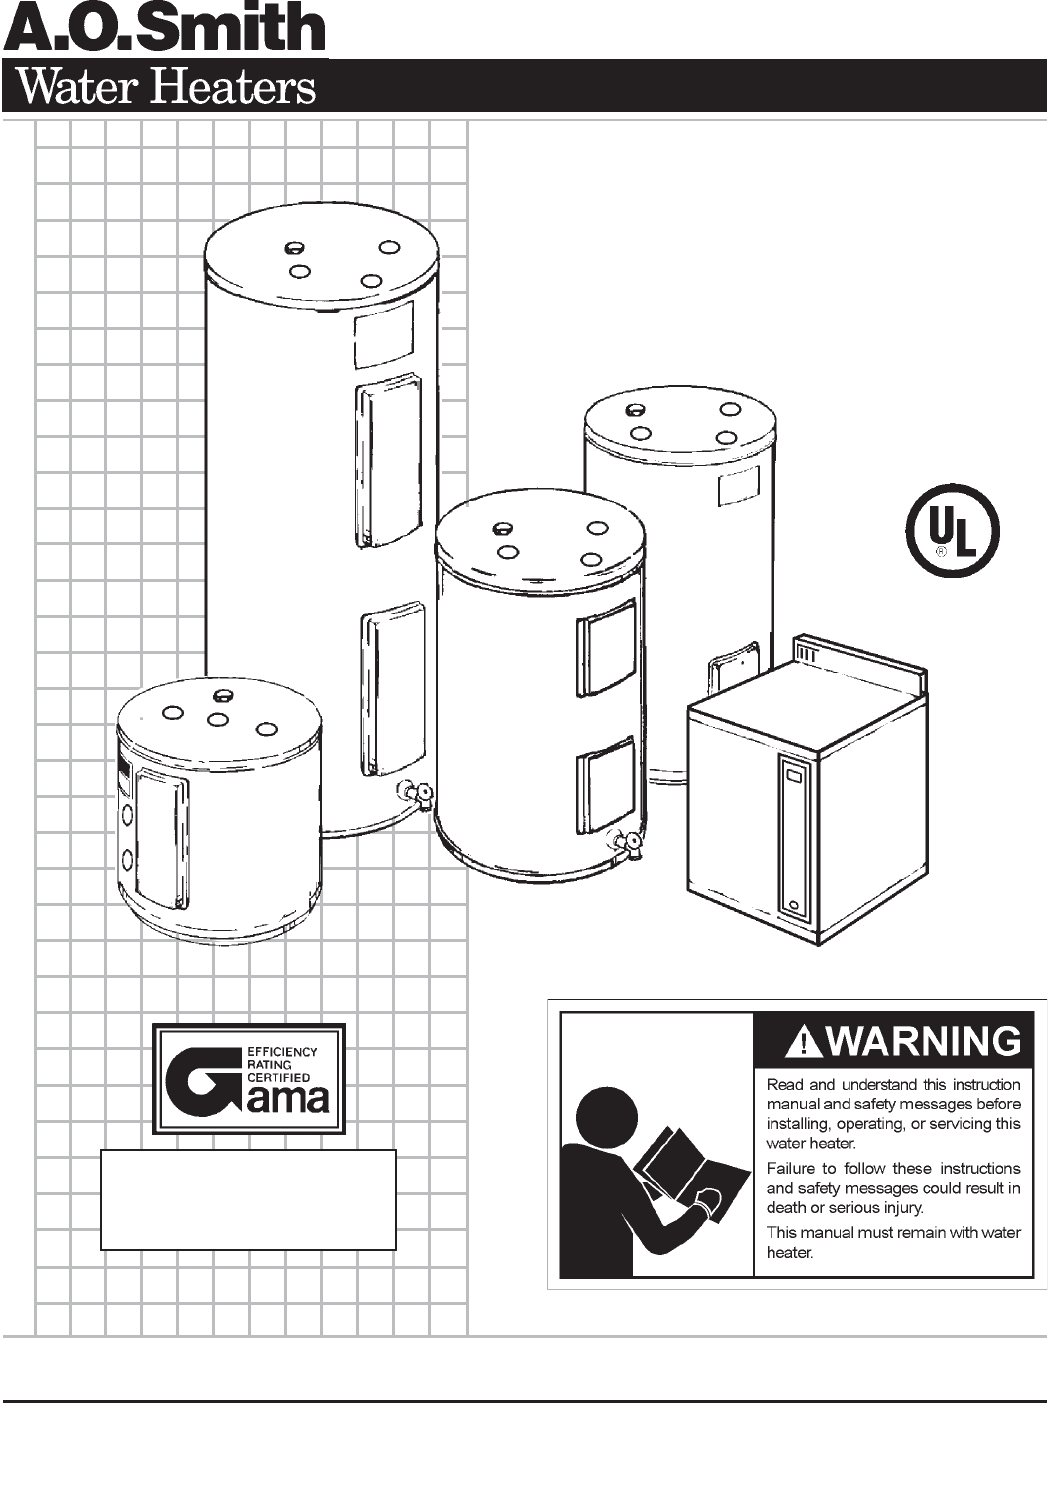 3509a988 74d5 459b aaef 95ebb87e3bd4 bg1 ao smith water heater wiring diagram ao wiring diagrams collection  at gsmx.co